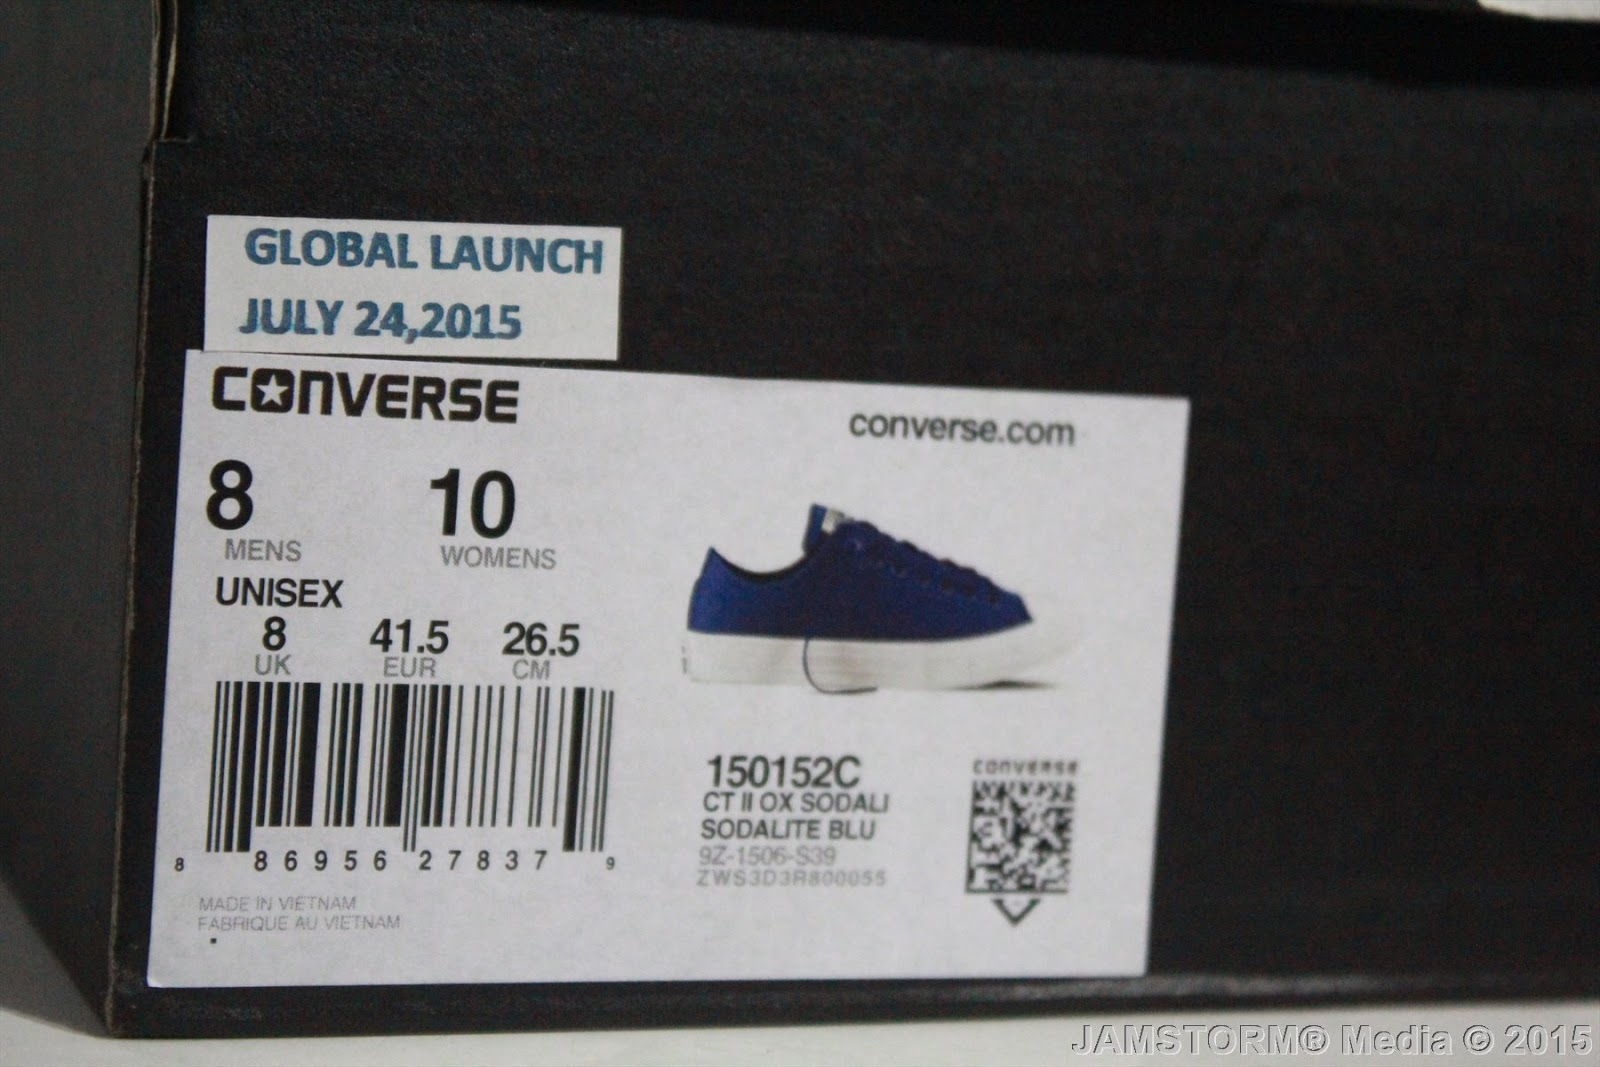 a040f98c0 08.10.2015 – For almost a hundred years Converse has been consistent about  their pair of shoes and even though Nike has acquired the company in 2003  it ...